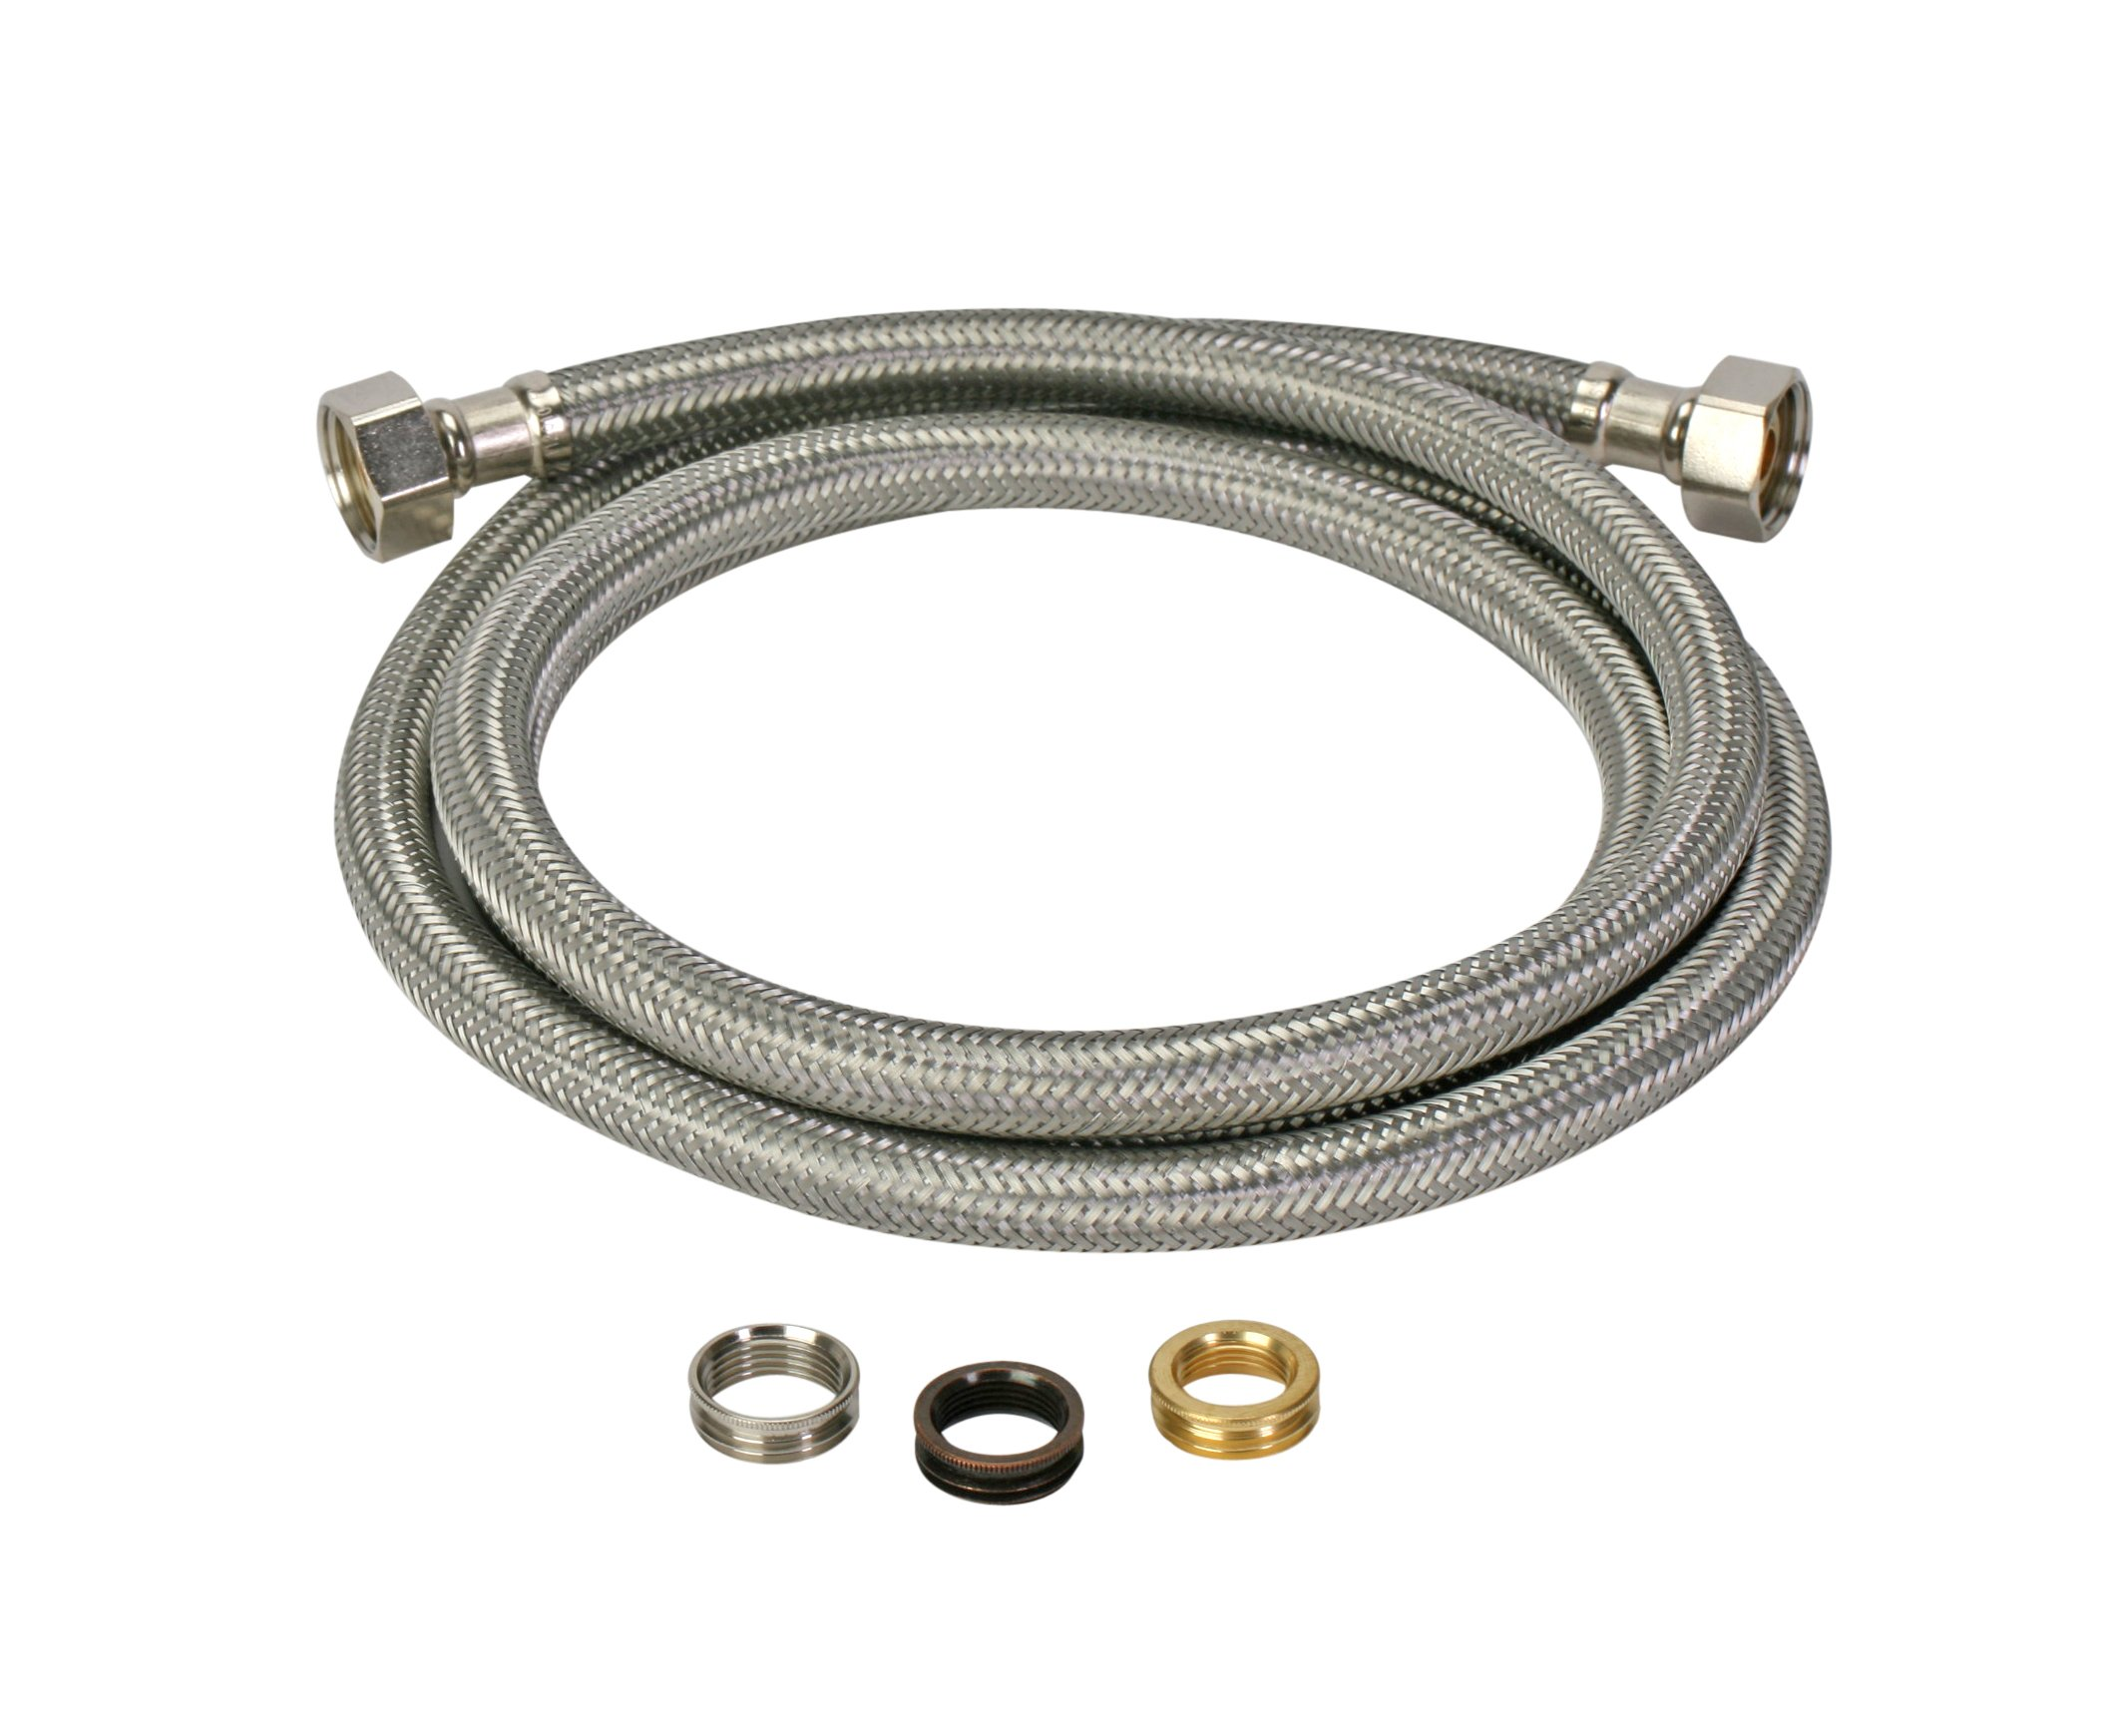 Fluidmaster 4F36CU Faucet Connector With Size Adaptors, Braided Stainless Steel - 3/8 Compresion, 7/16 Compression, 1/2 Compression, or 1/2 F.I.P. Thread x 1/2 F.I.P. Thread, 36-Inch Length